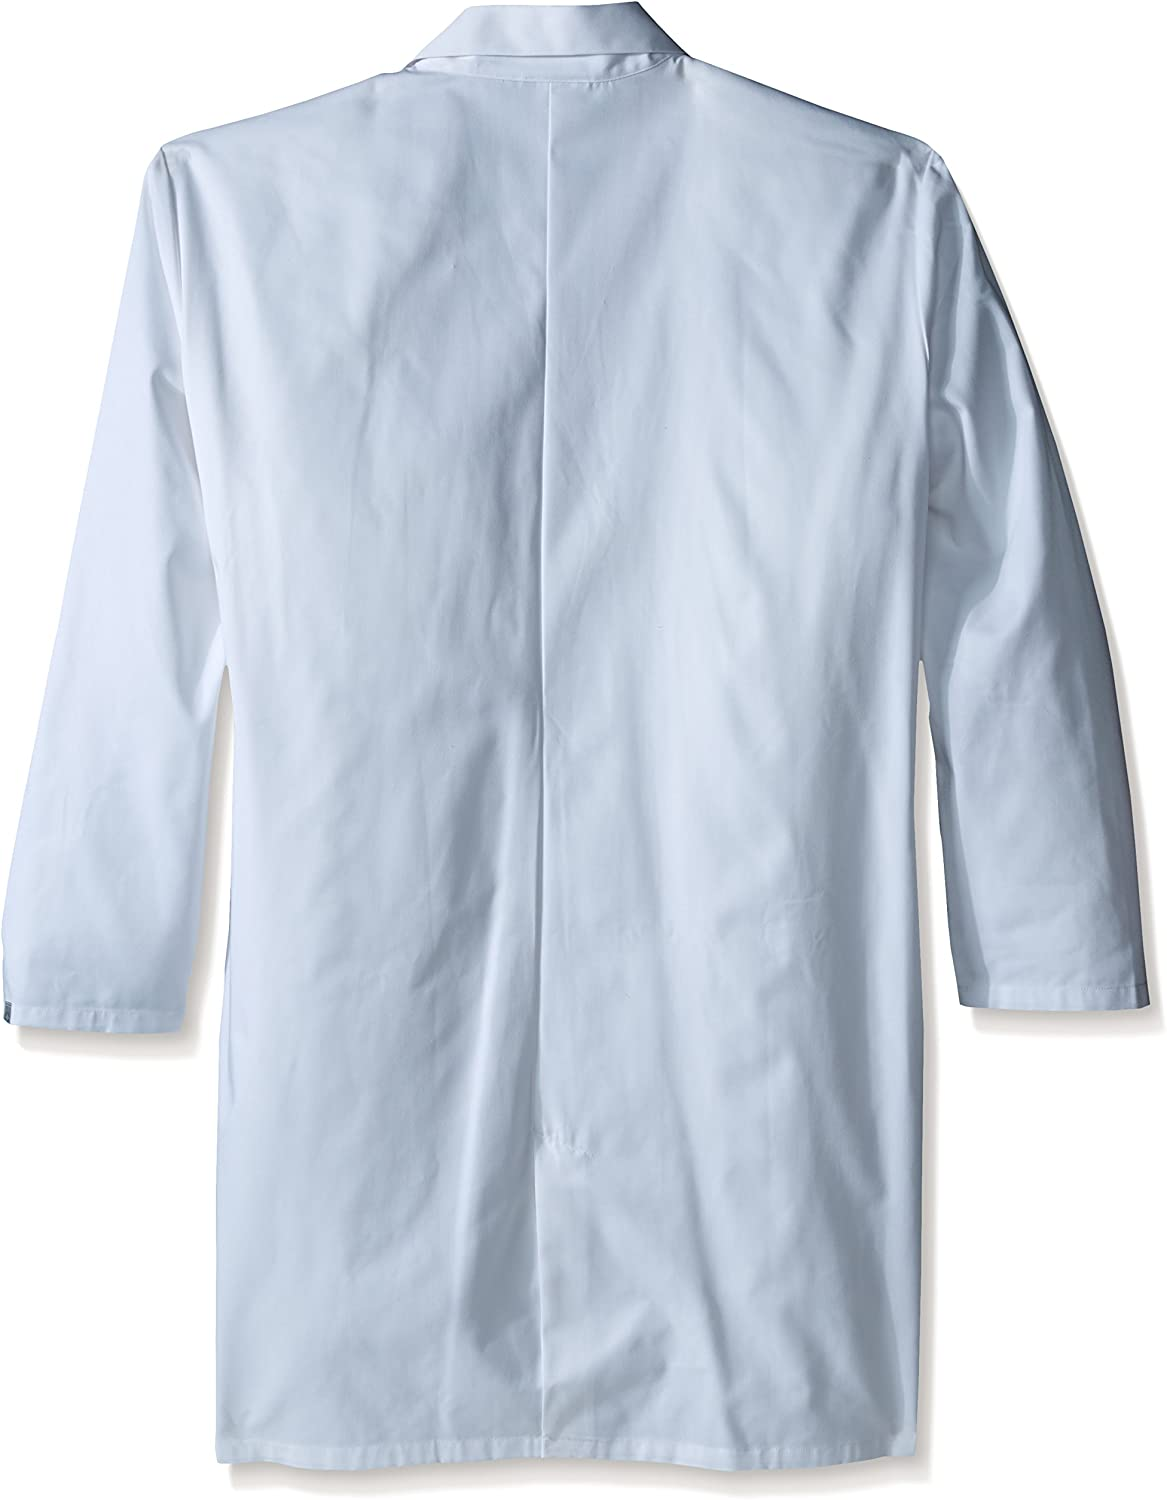 """CHEROKEE Men's Big and Tall Professional Whites with Certainty 40"""" Unisex Lab Coat Big & Tall in Twill: Clothing"""